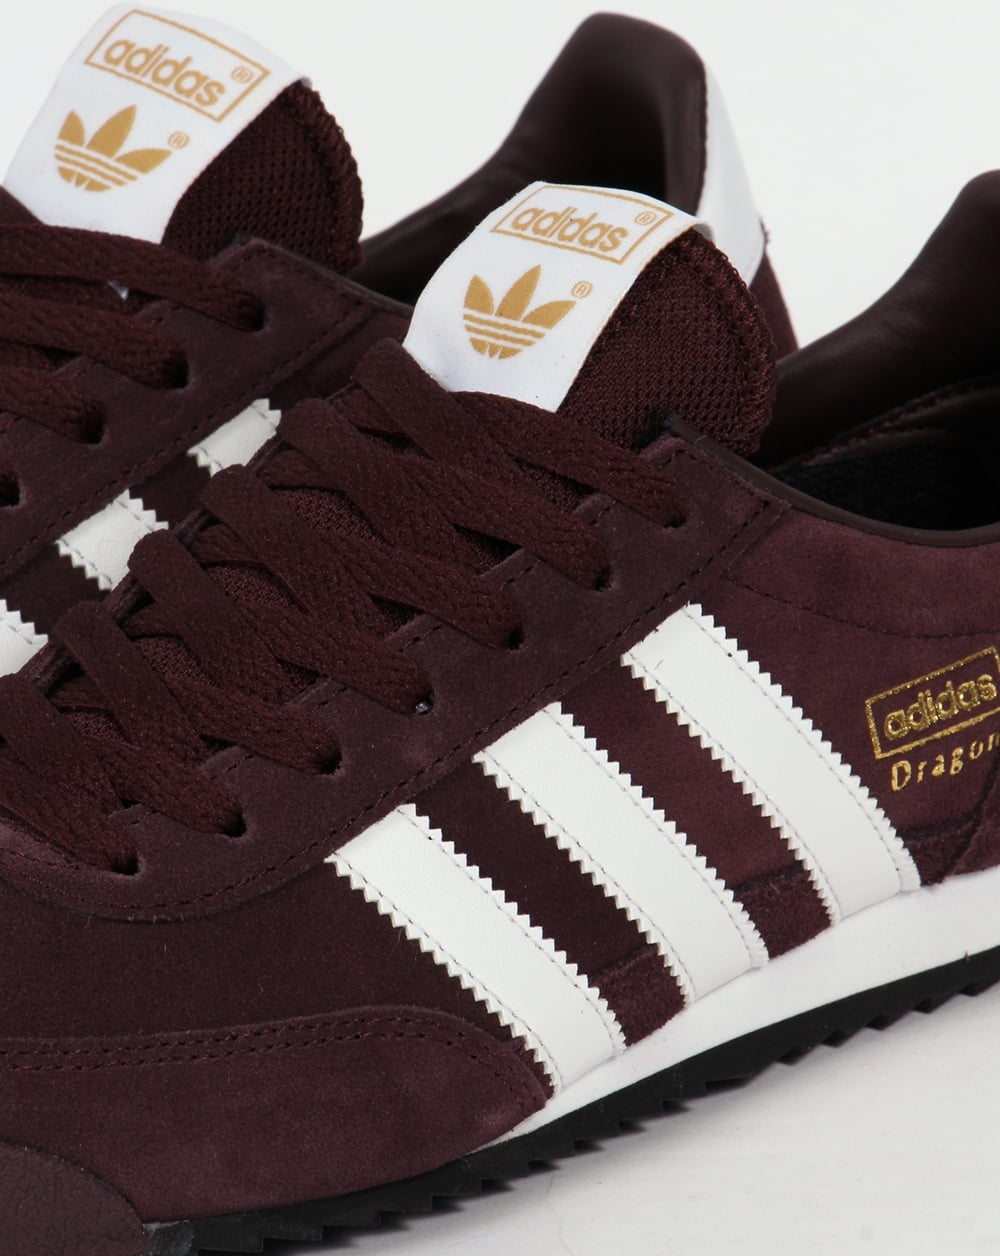 Adidas Dragon Red Year of Clean Water